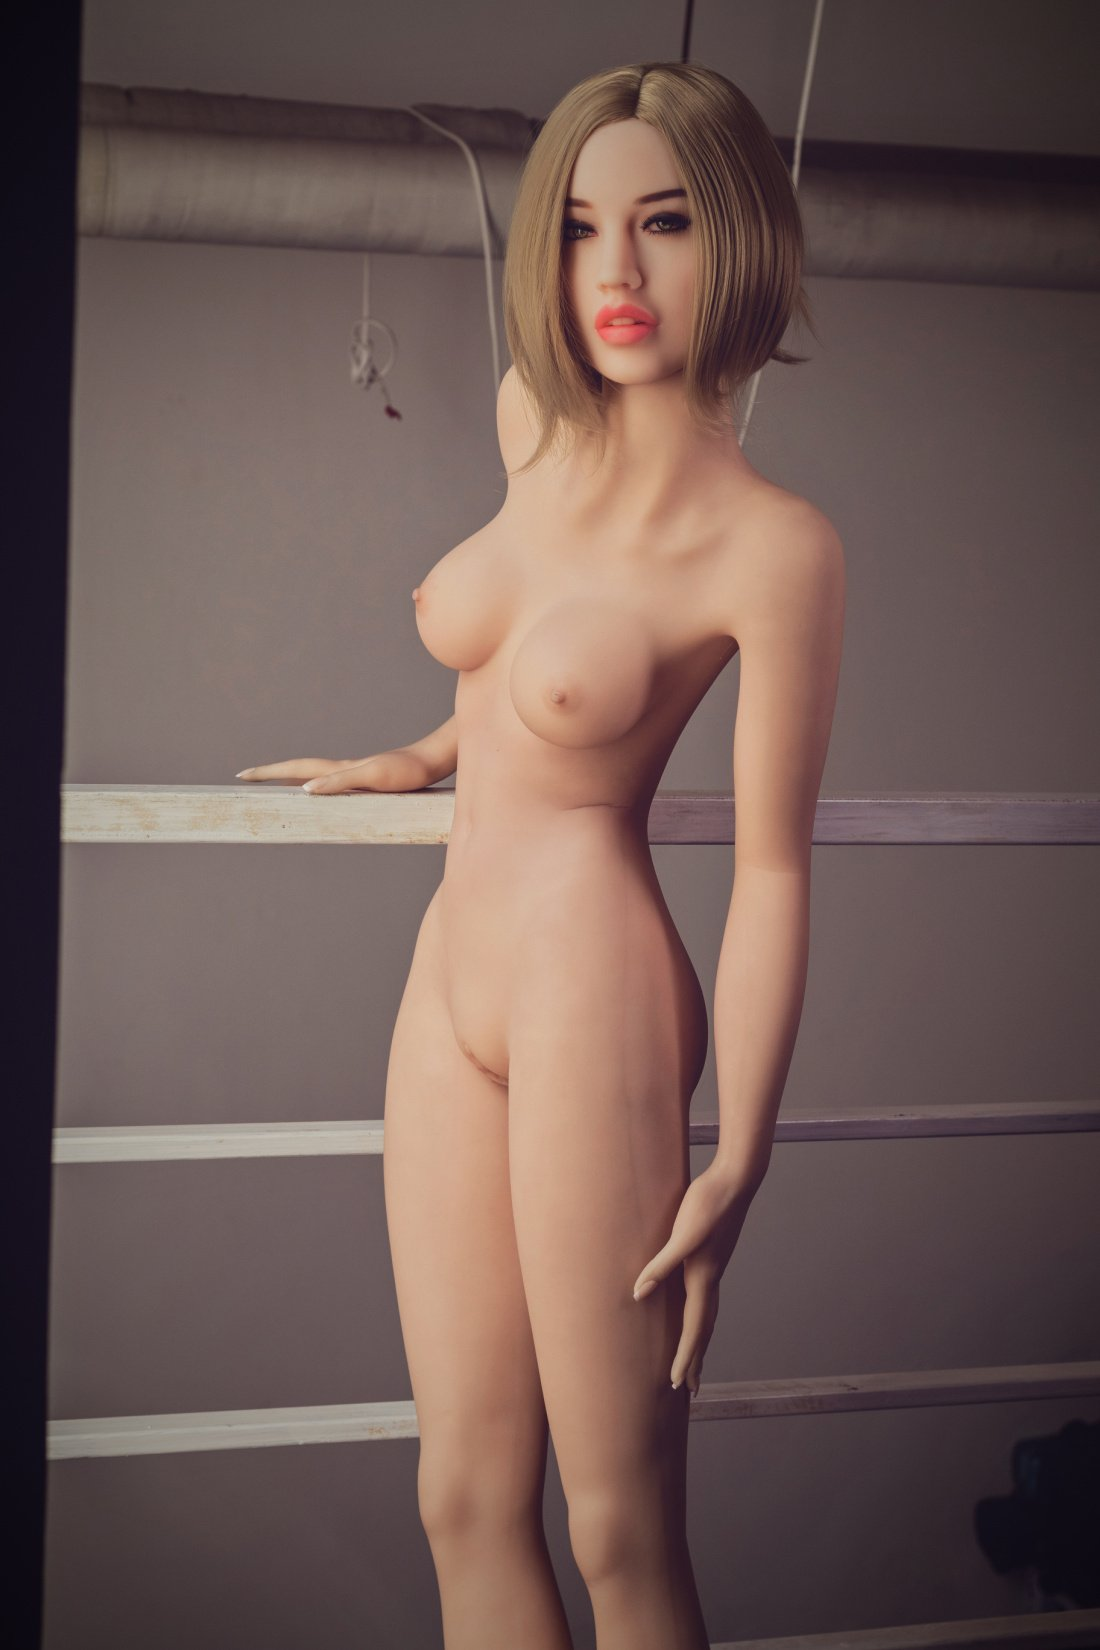 marylouise 157cm blonde skinny flat chested tpe wm sex doll(5)